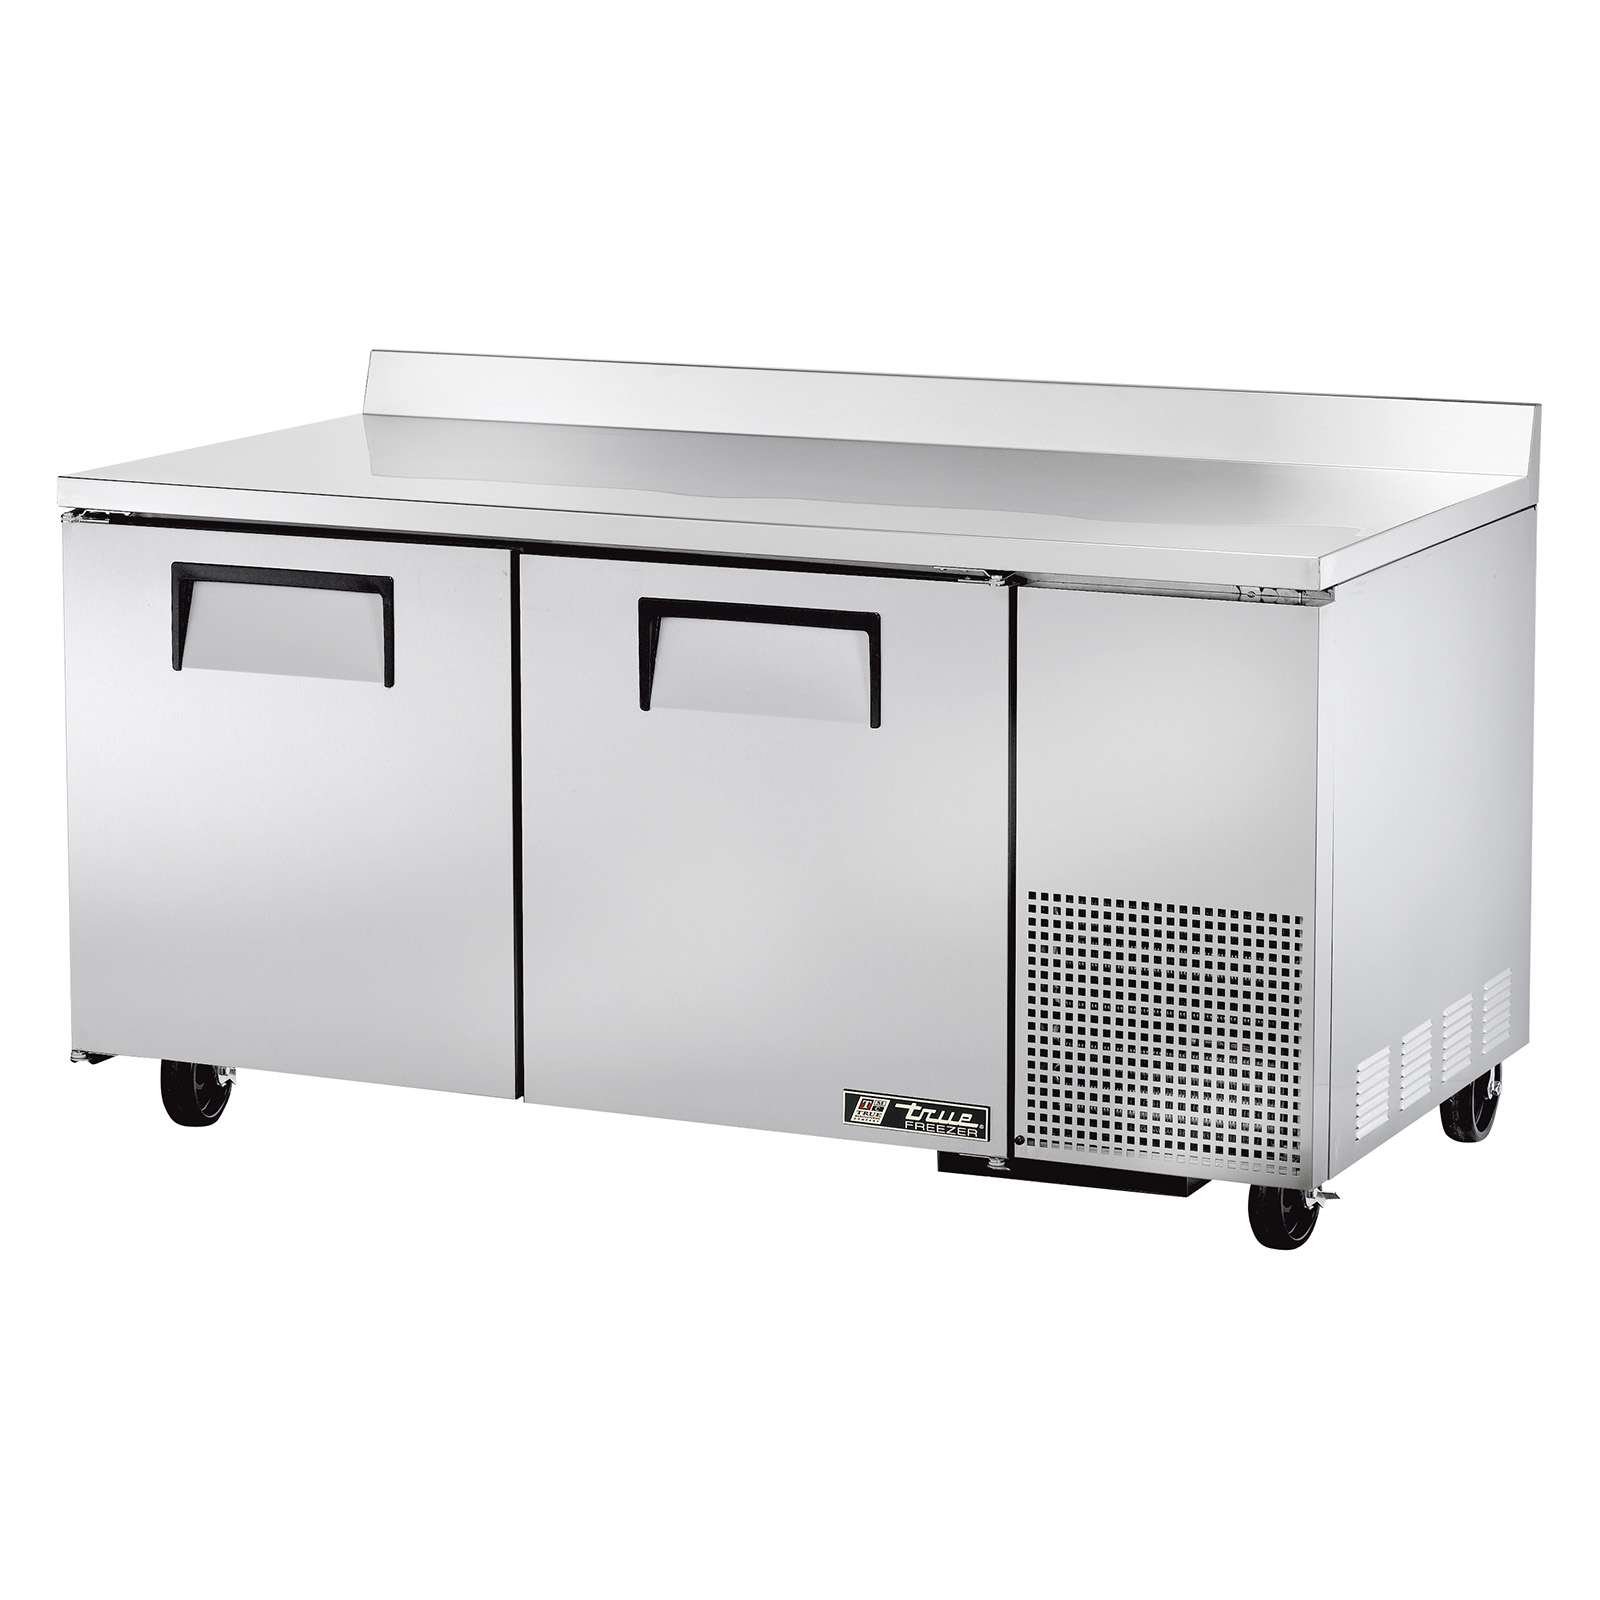 TWT-67F True - Deep Work Top Freezer two-section